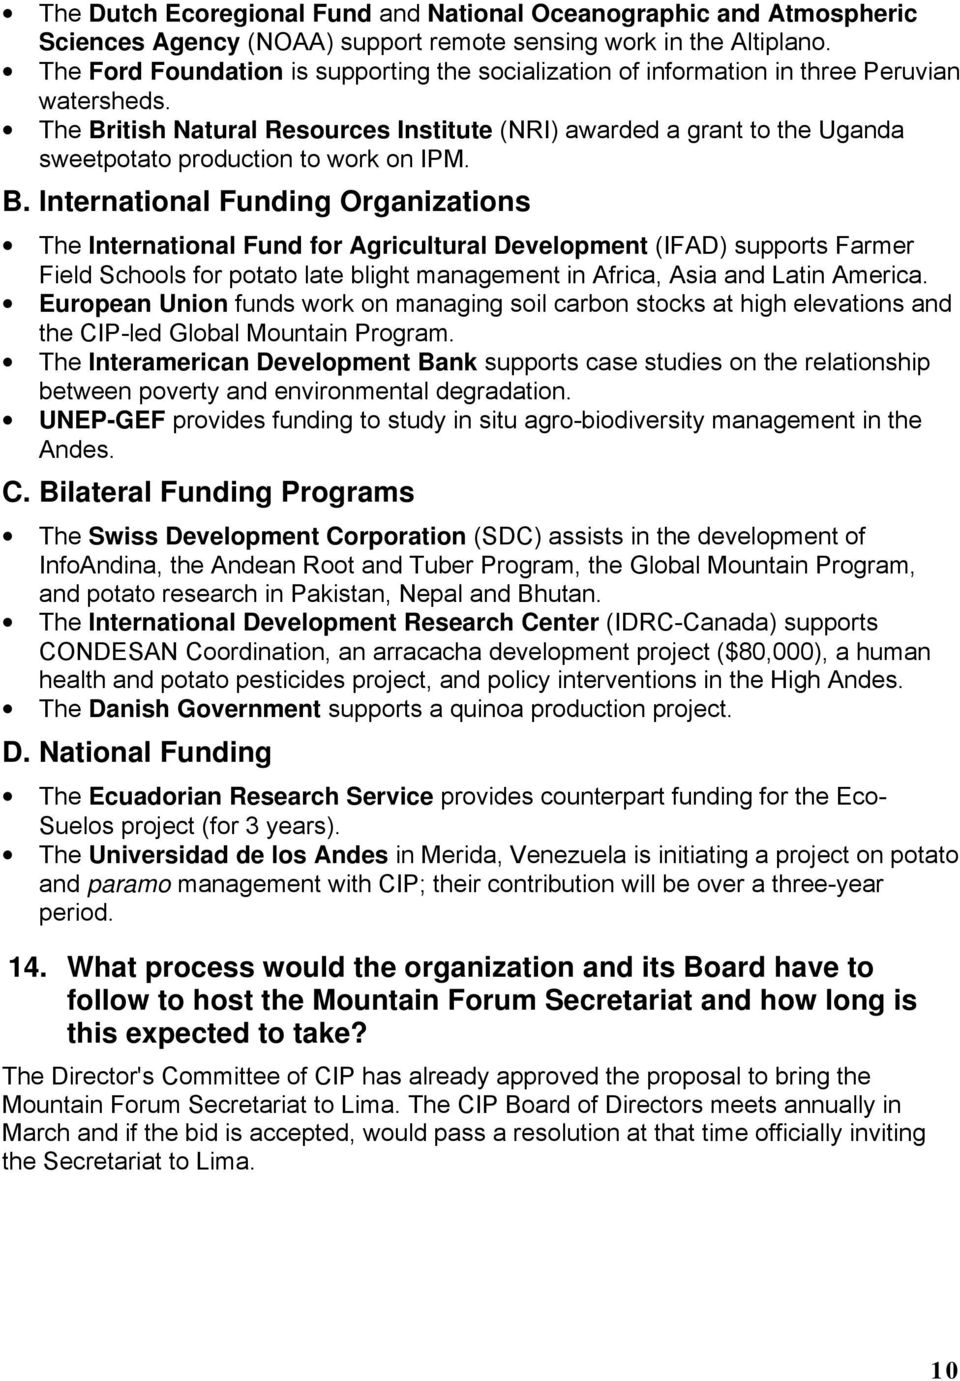 The British Natural Resources Institute (NRI) awarded a grant to the Uganda sweetpotato production to work on IPM. B. International Funding Organizations The International Fund for Agricultural Development (IFAD) supports Farmer Field Schools for potato late blight management in Africa, Asia and Latin America.